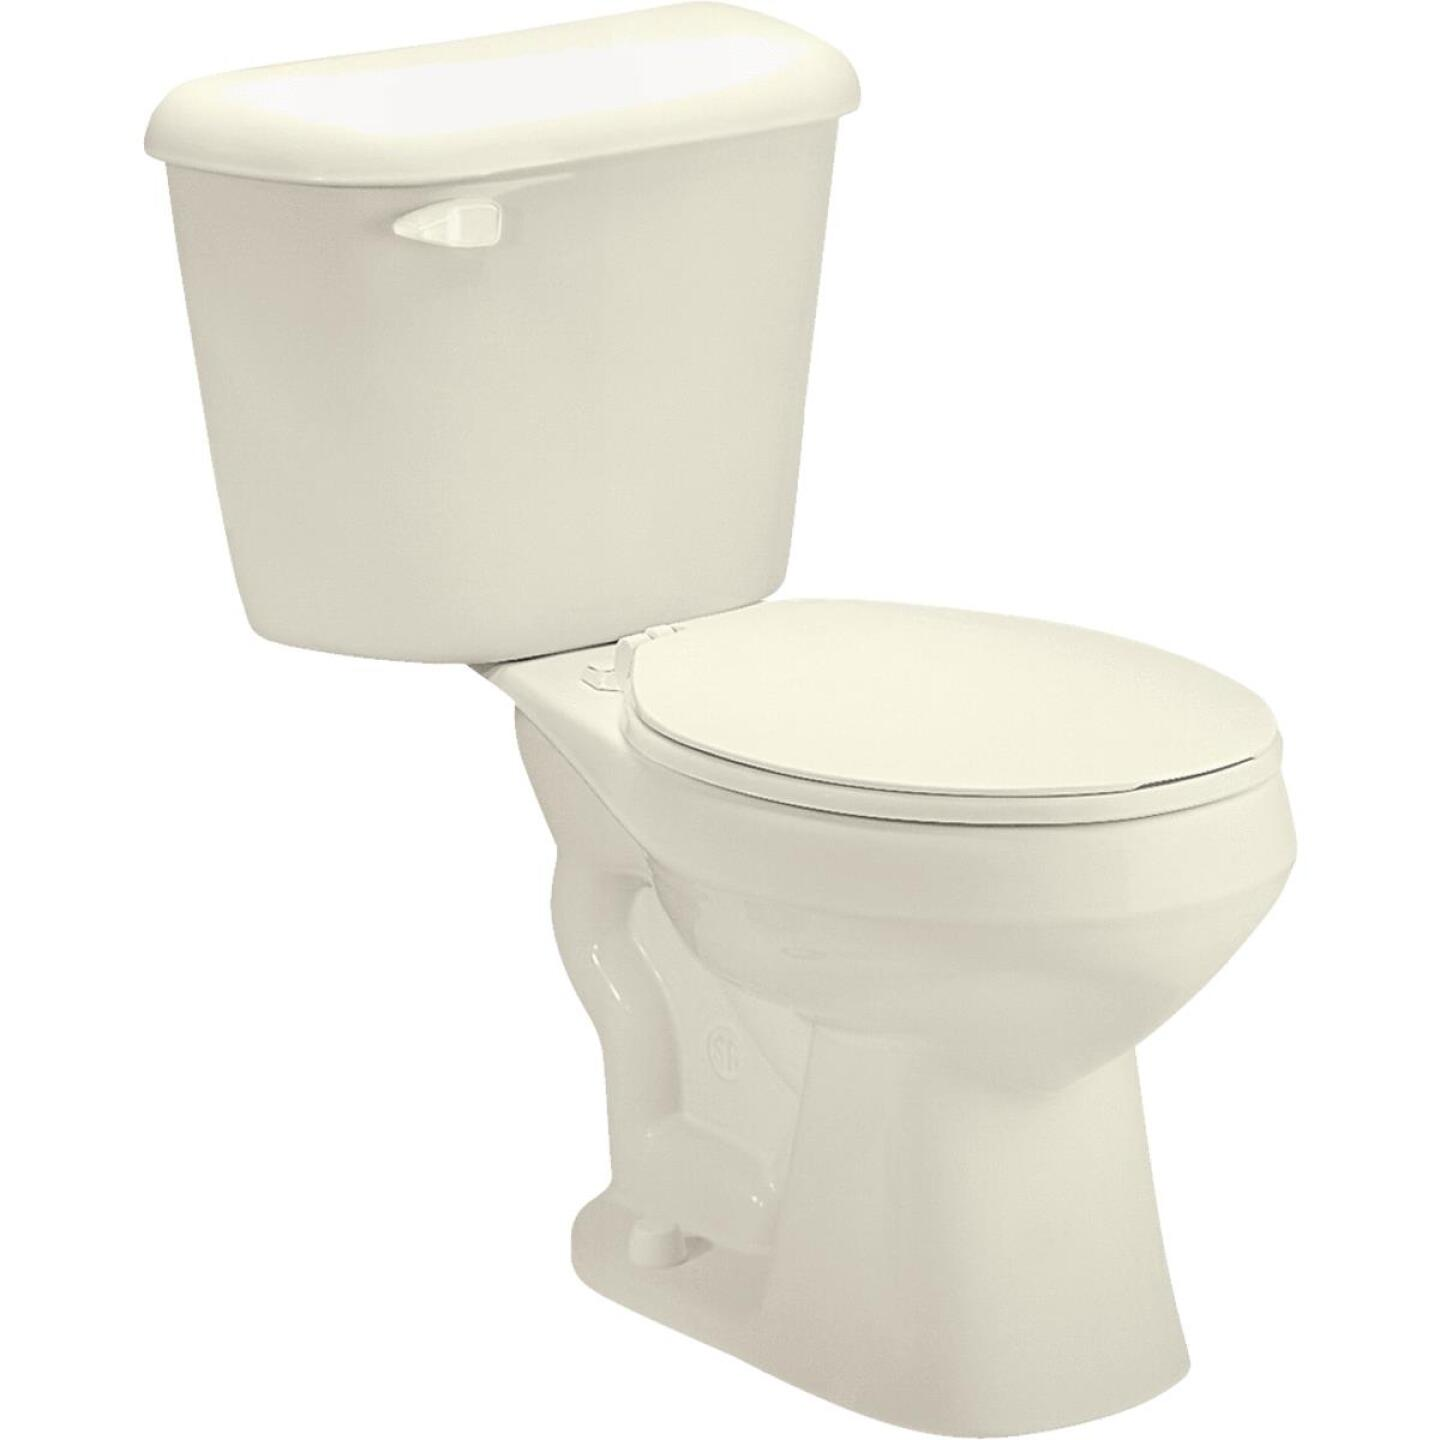 Mansfield Pro-Fit 1-128 HET Biscuit Round Bowl 1.28 GPF Complete Toilet Image 2